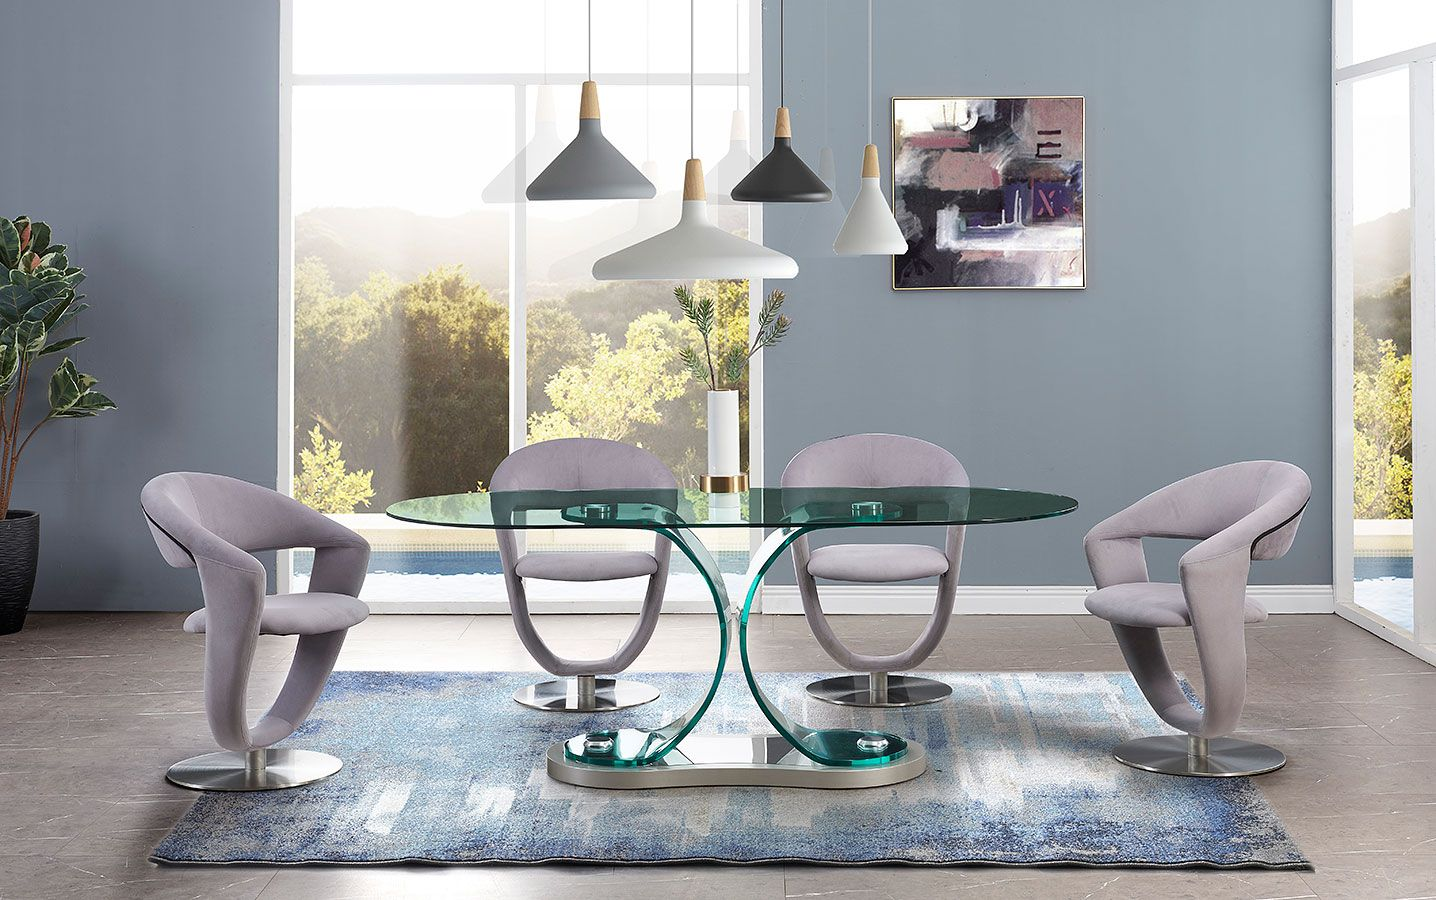 D1713 Dining Room Set W Swivel Chairs Modern Dining Table Global Furniture Global Furniture Usa